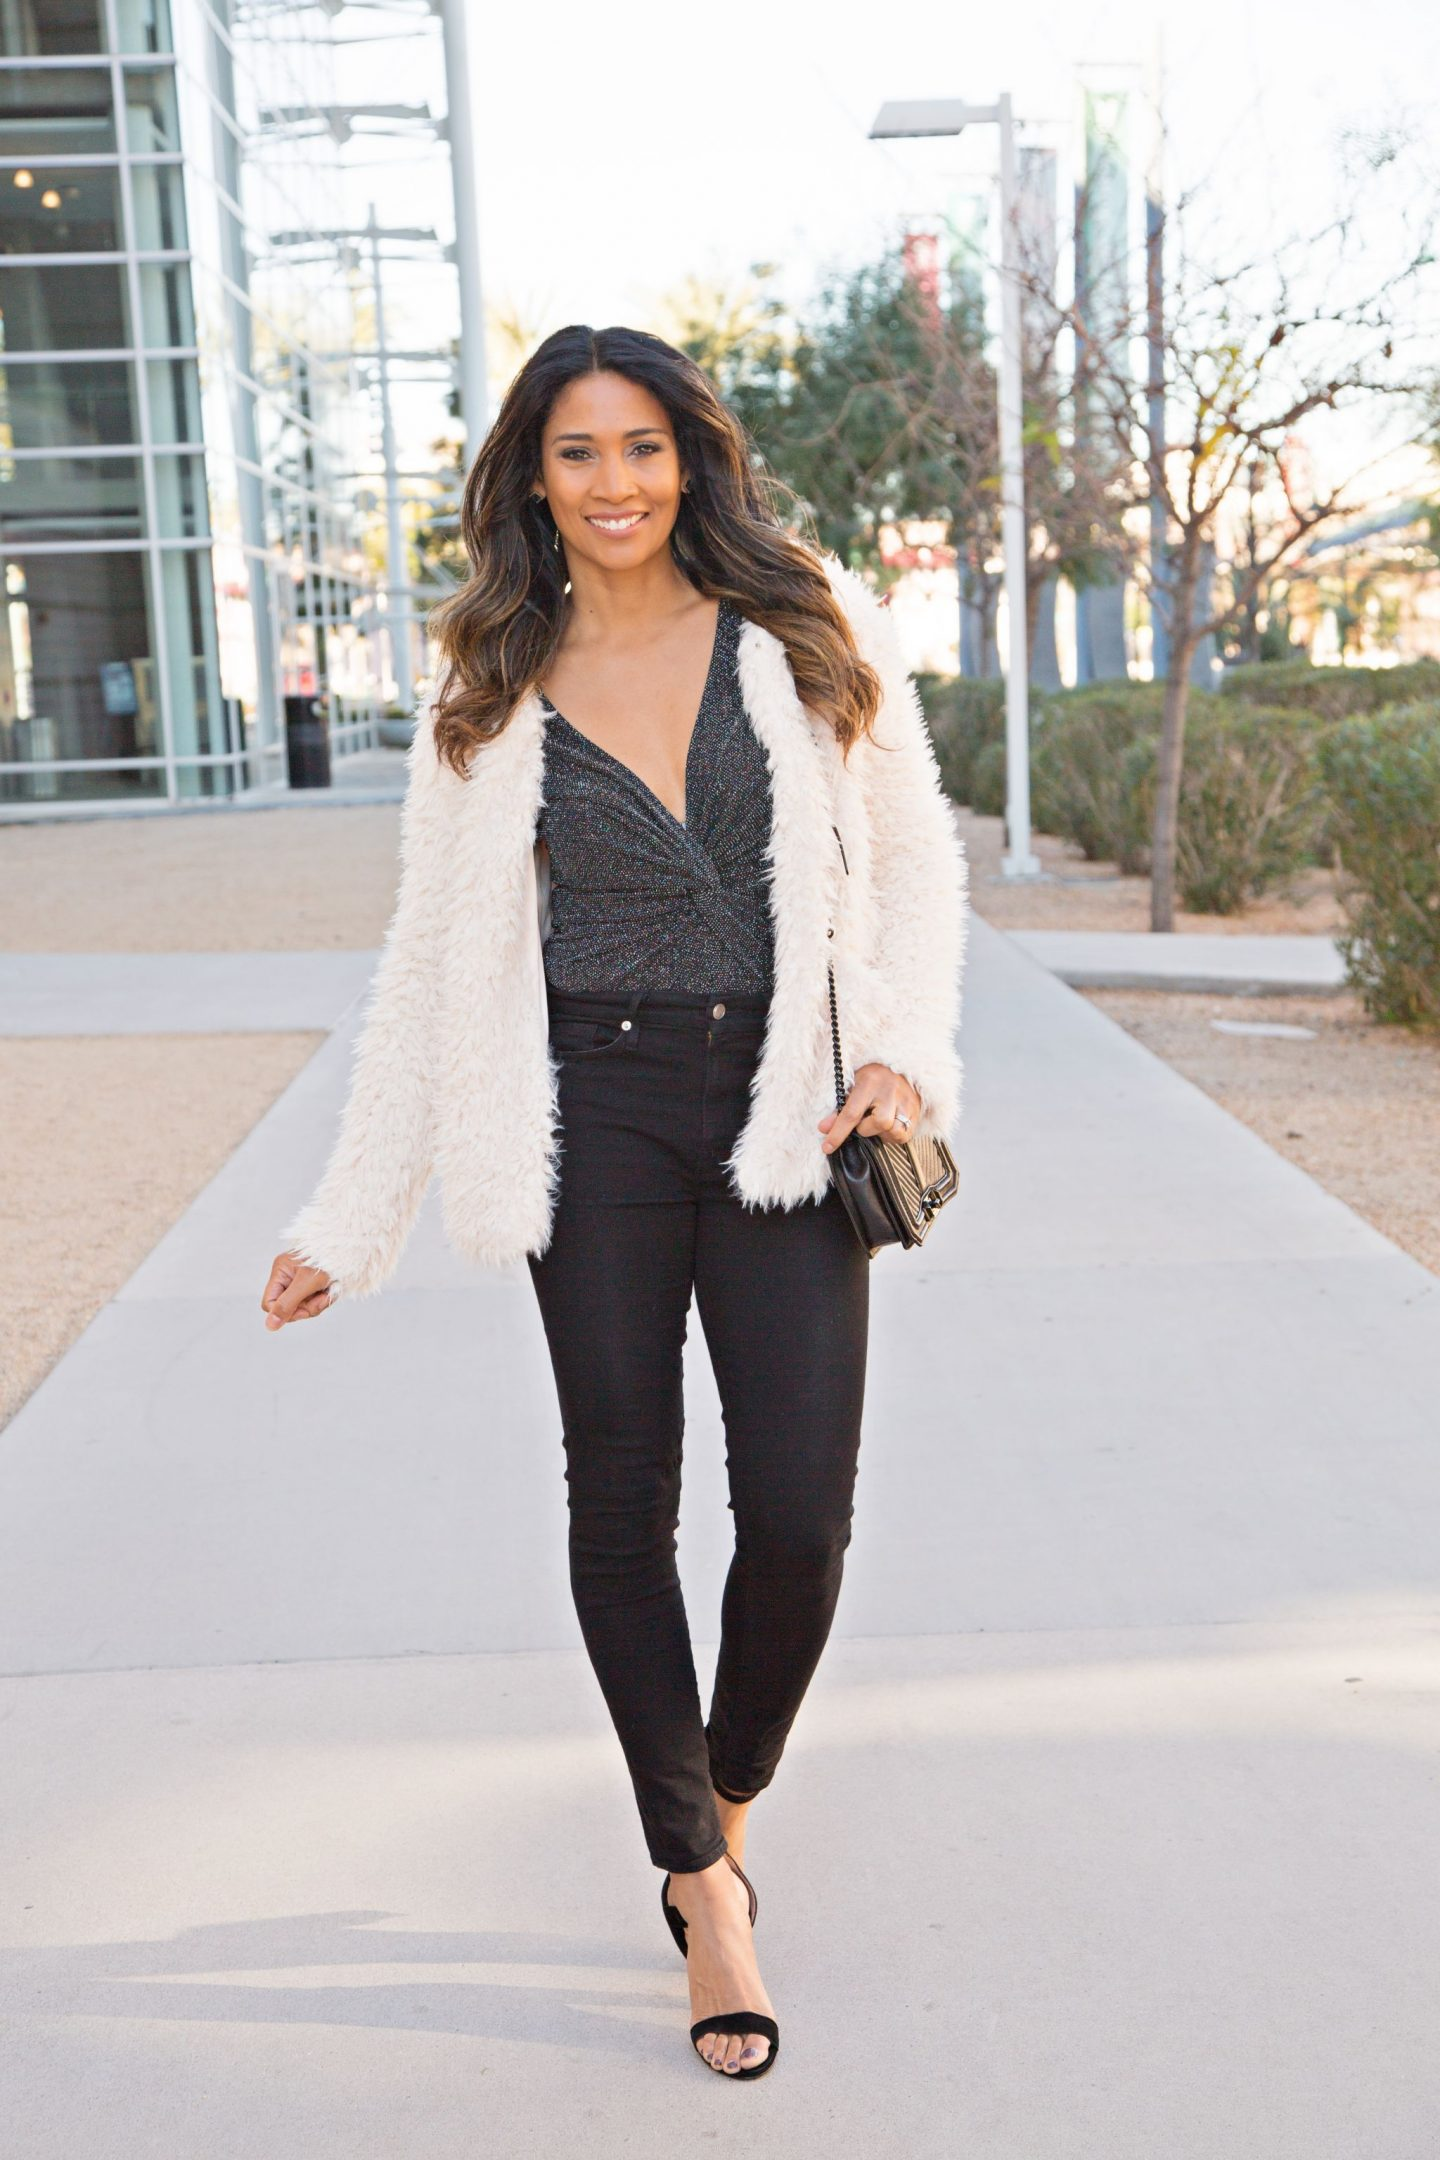 NEW YEARS OUTFIT, BODYSUIT, WHAT TO WEAR, PARTY OUTFIT, FASHION INSPO, FAUX FUR JACKET, SHAGGY JACKE, BLOGGER STYLE